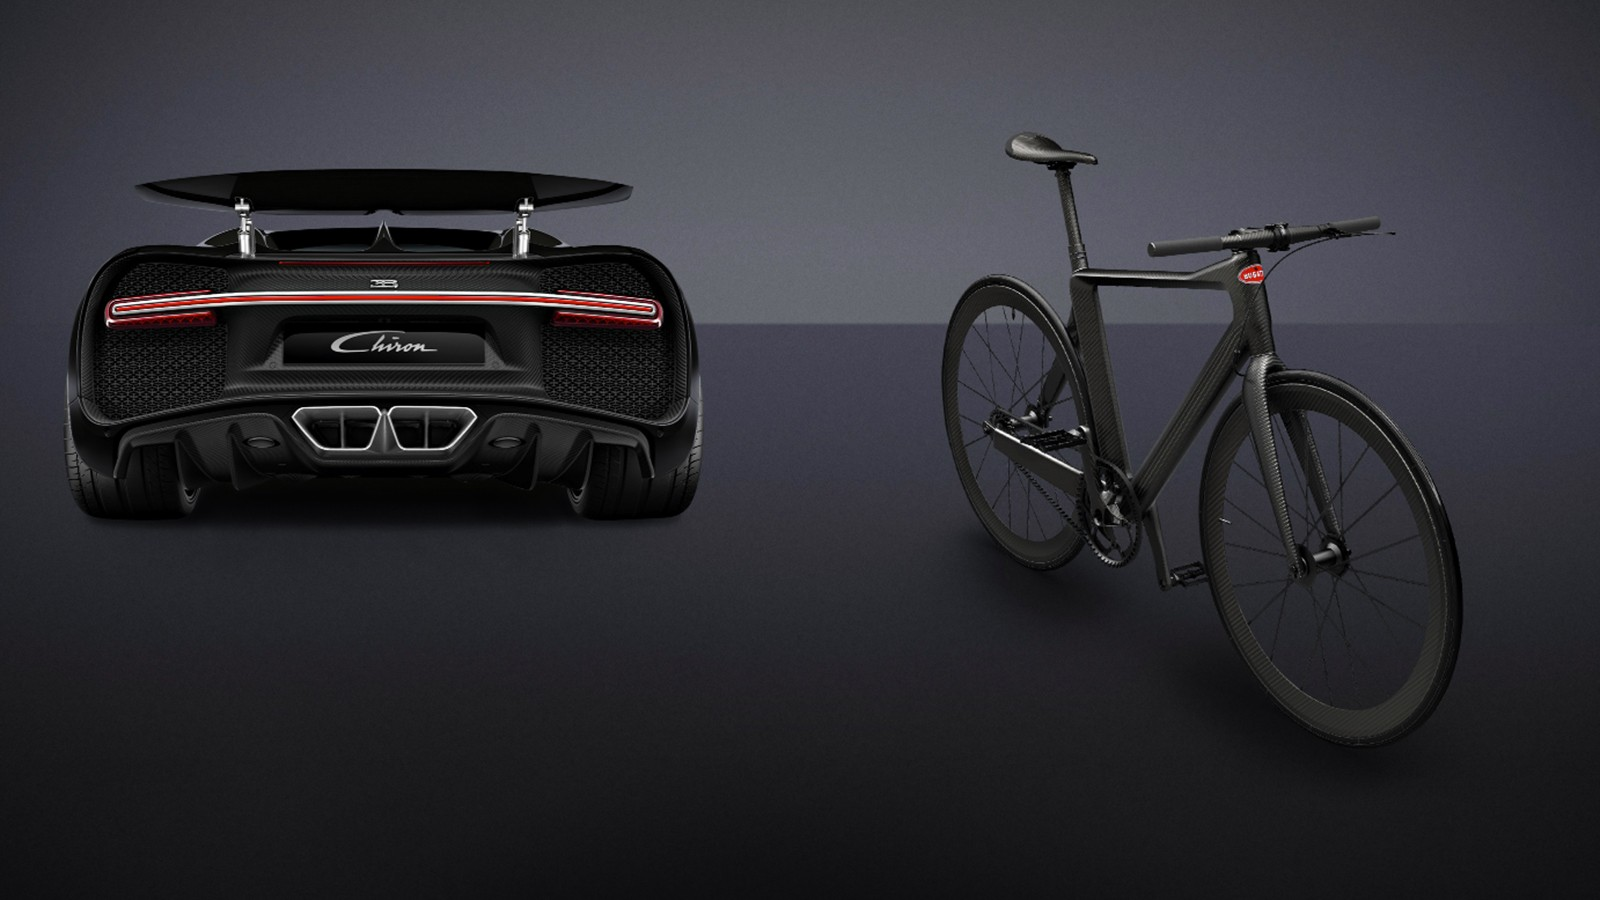 The PG Bugatti bike is part of a huge list of products holding the Bugatti badge that have been launched alongside the firm's Chiron hypercar